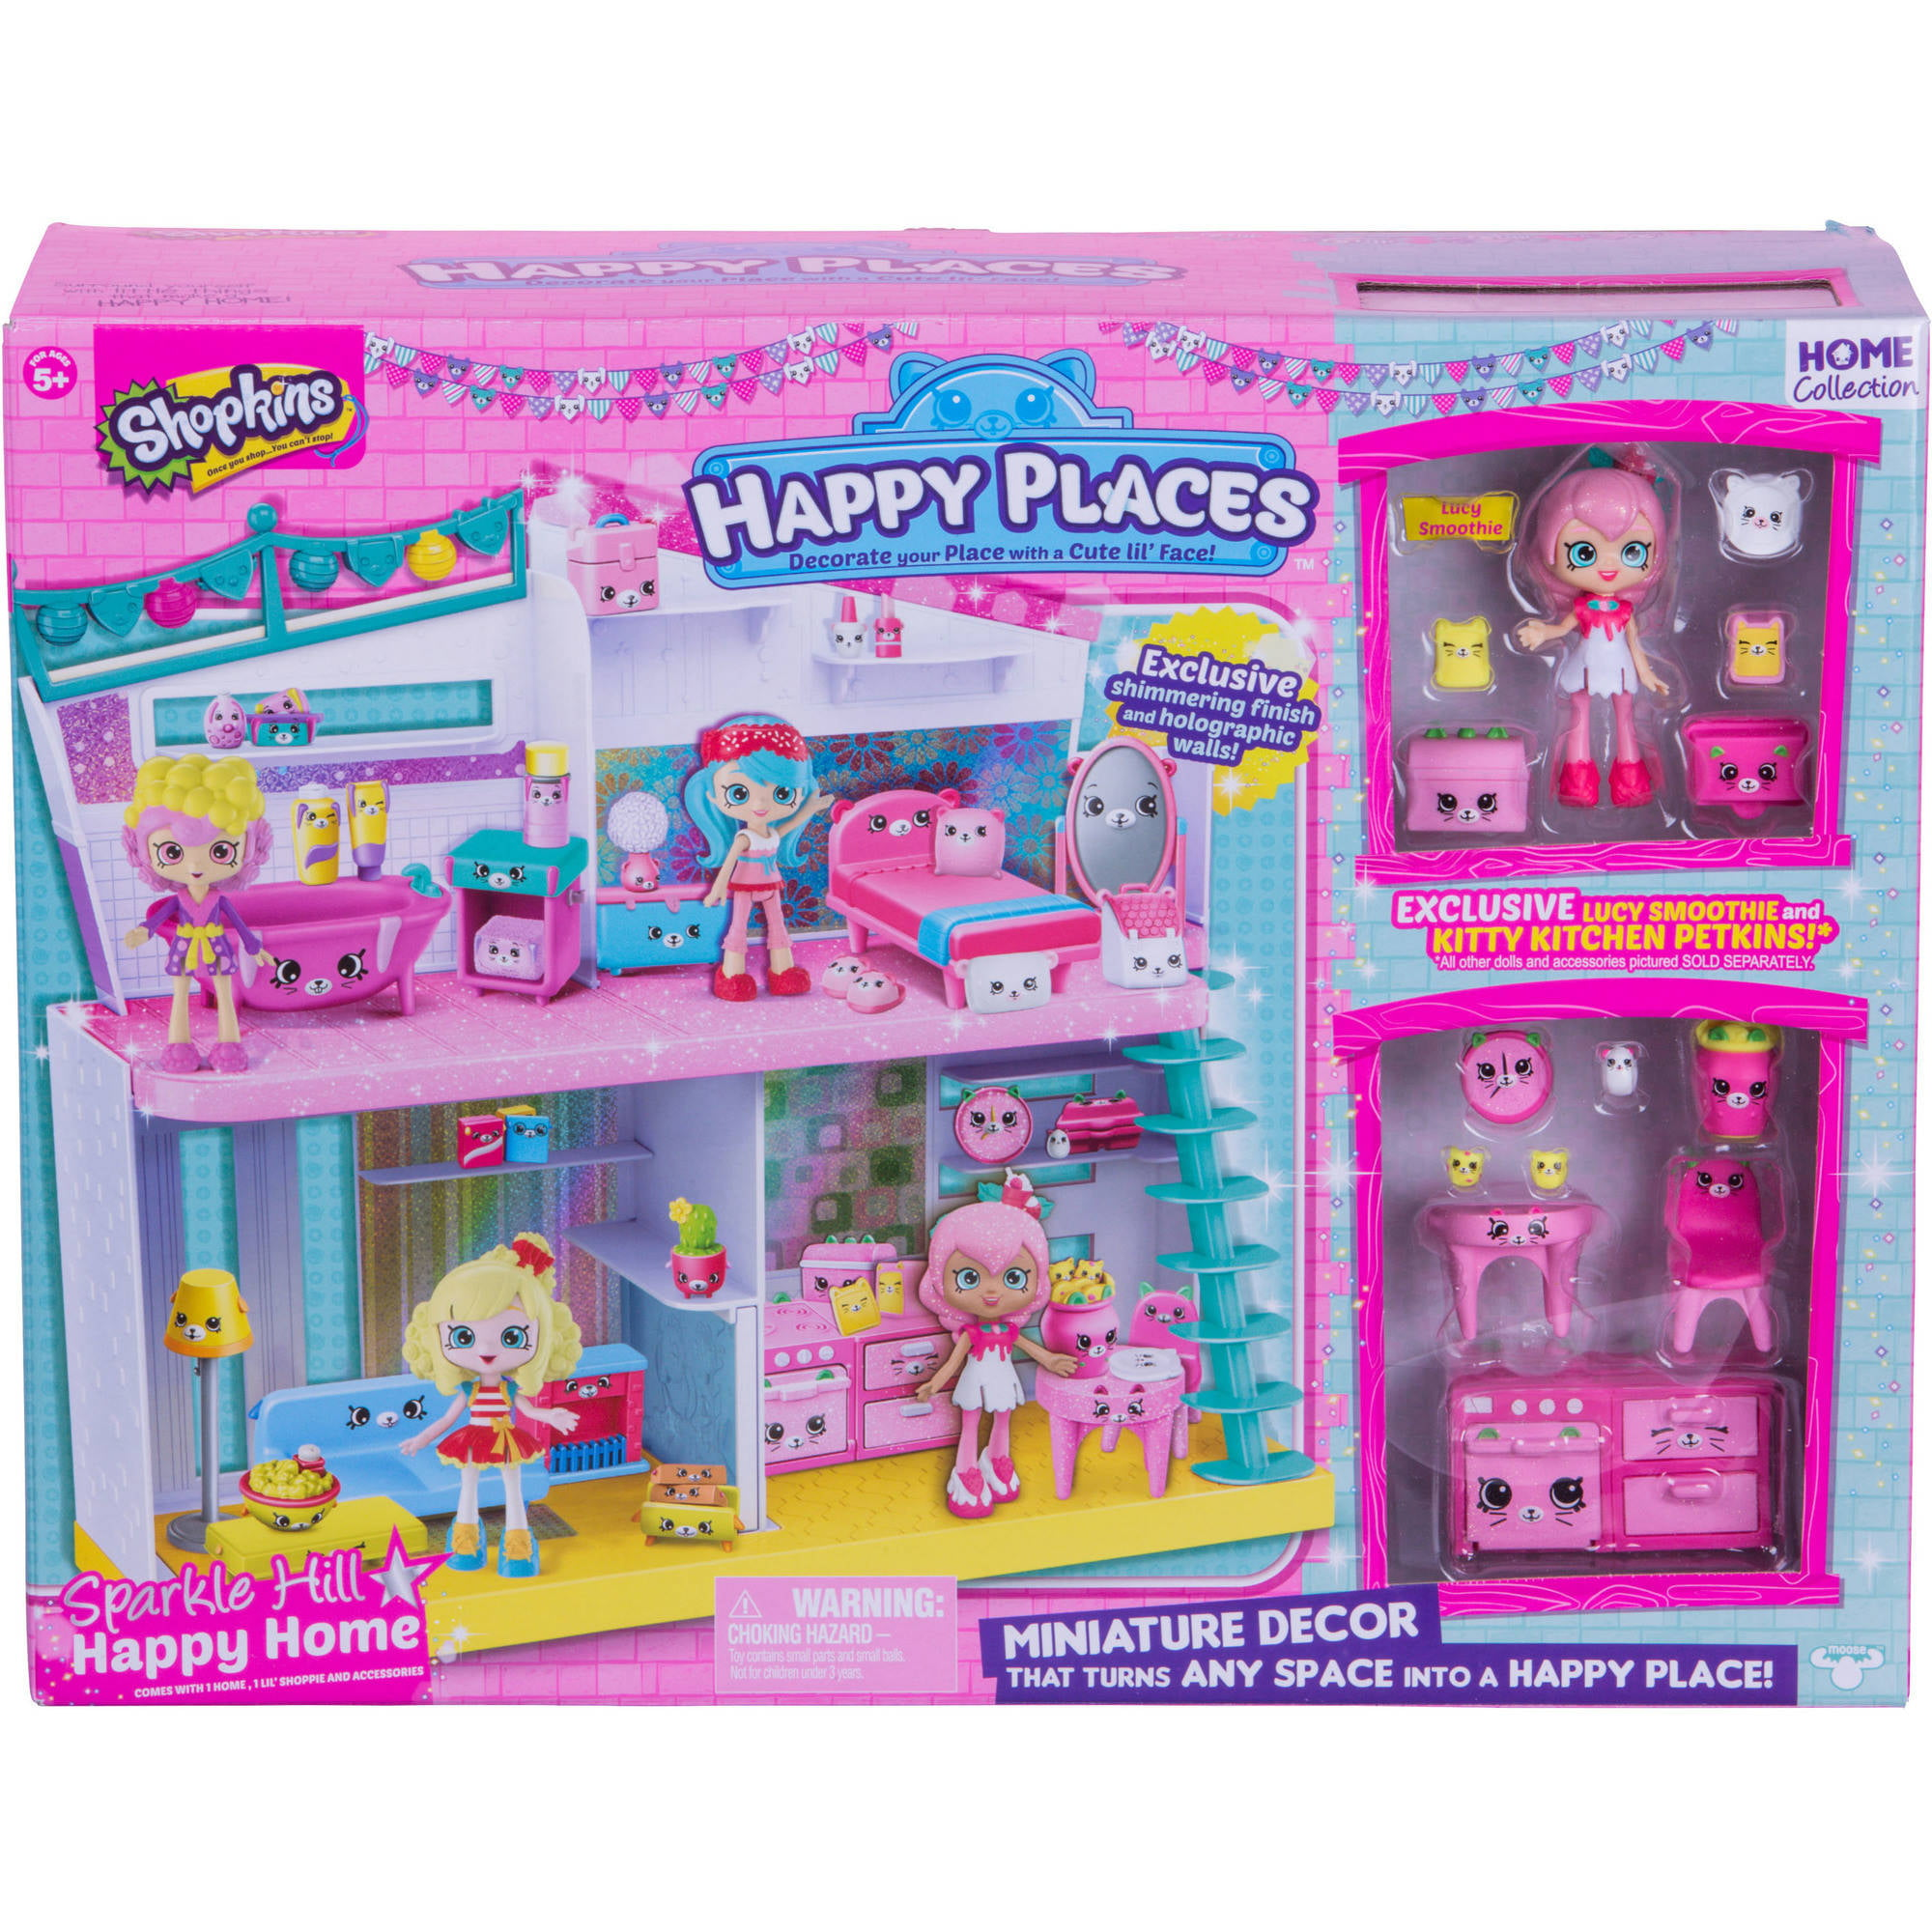 Shopkins Happy Places Sparkle Hill Home